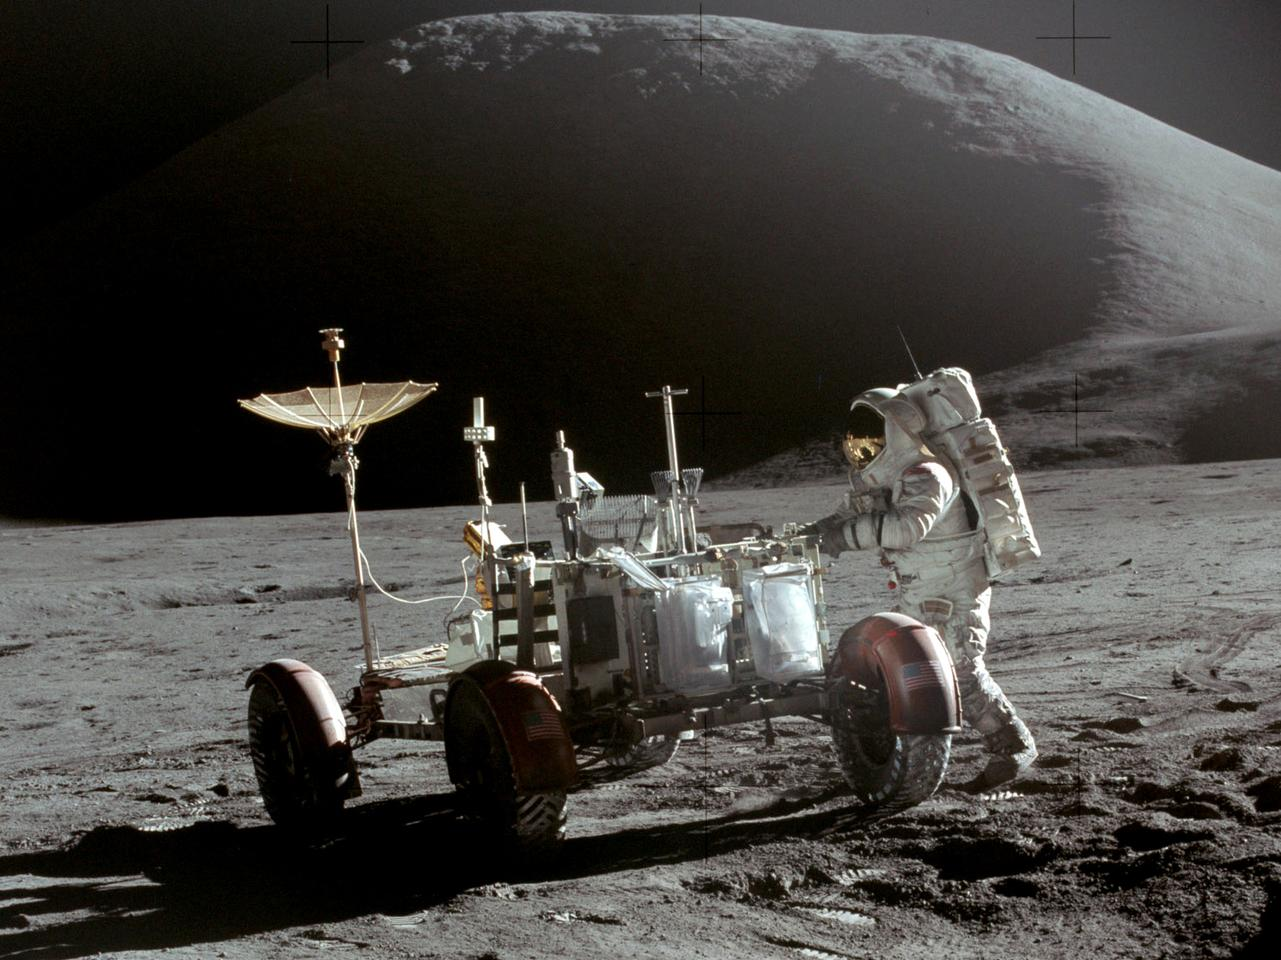 Lunar rilles similar to those explored by Apollo 15 in 1971 indicate the existence of giant lava tubes on the Moon (Image: NASA)